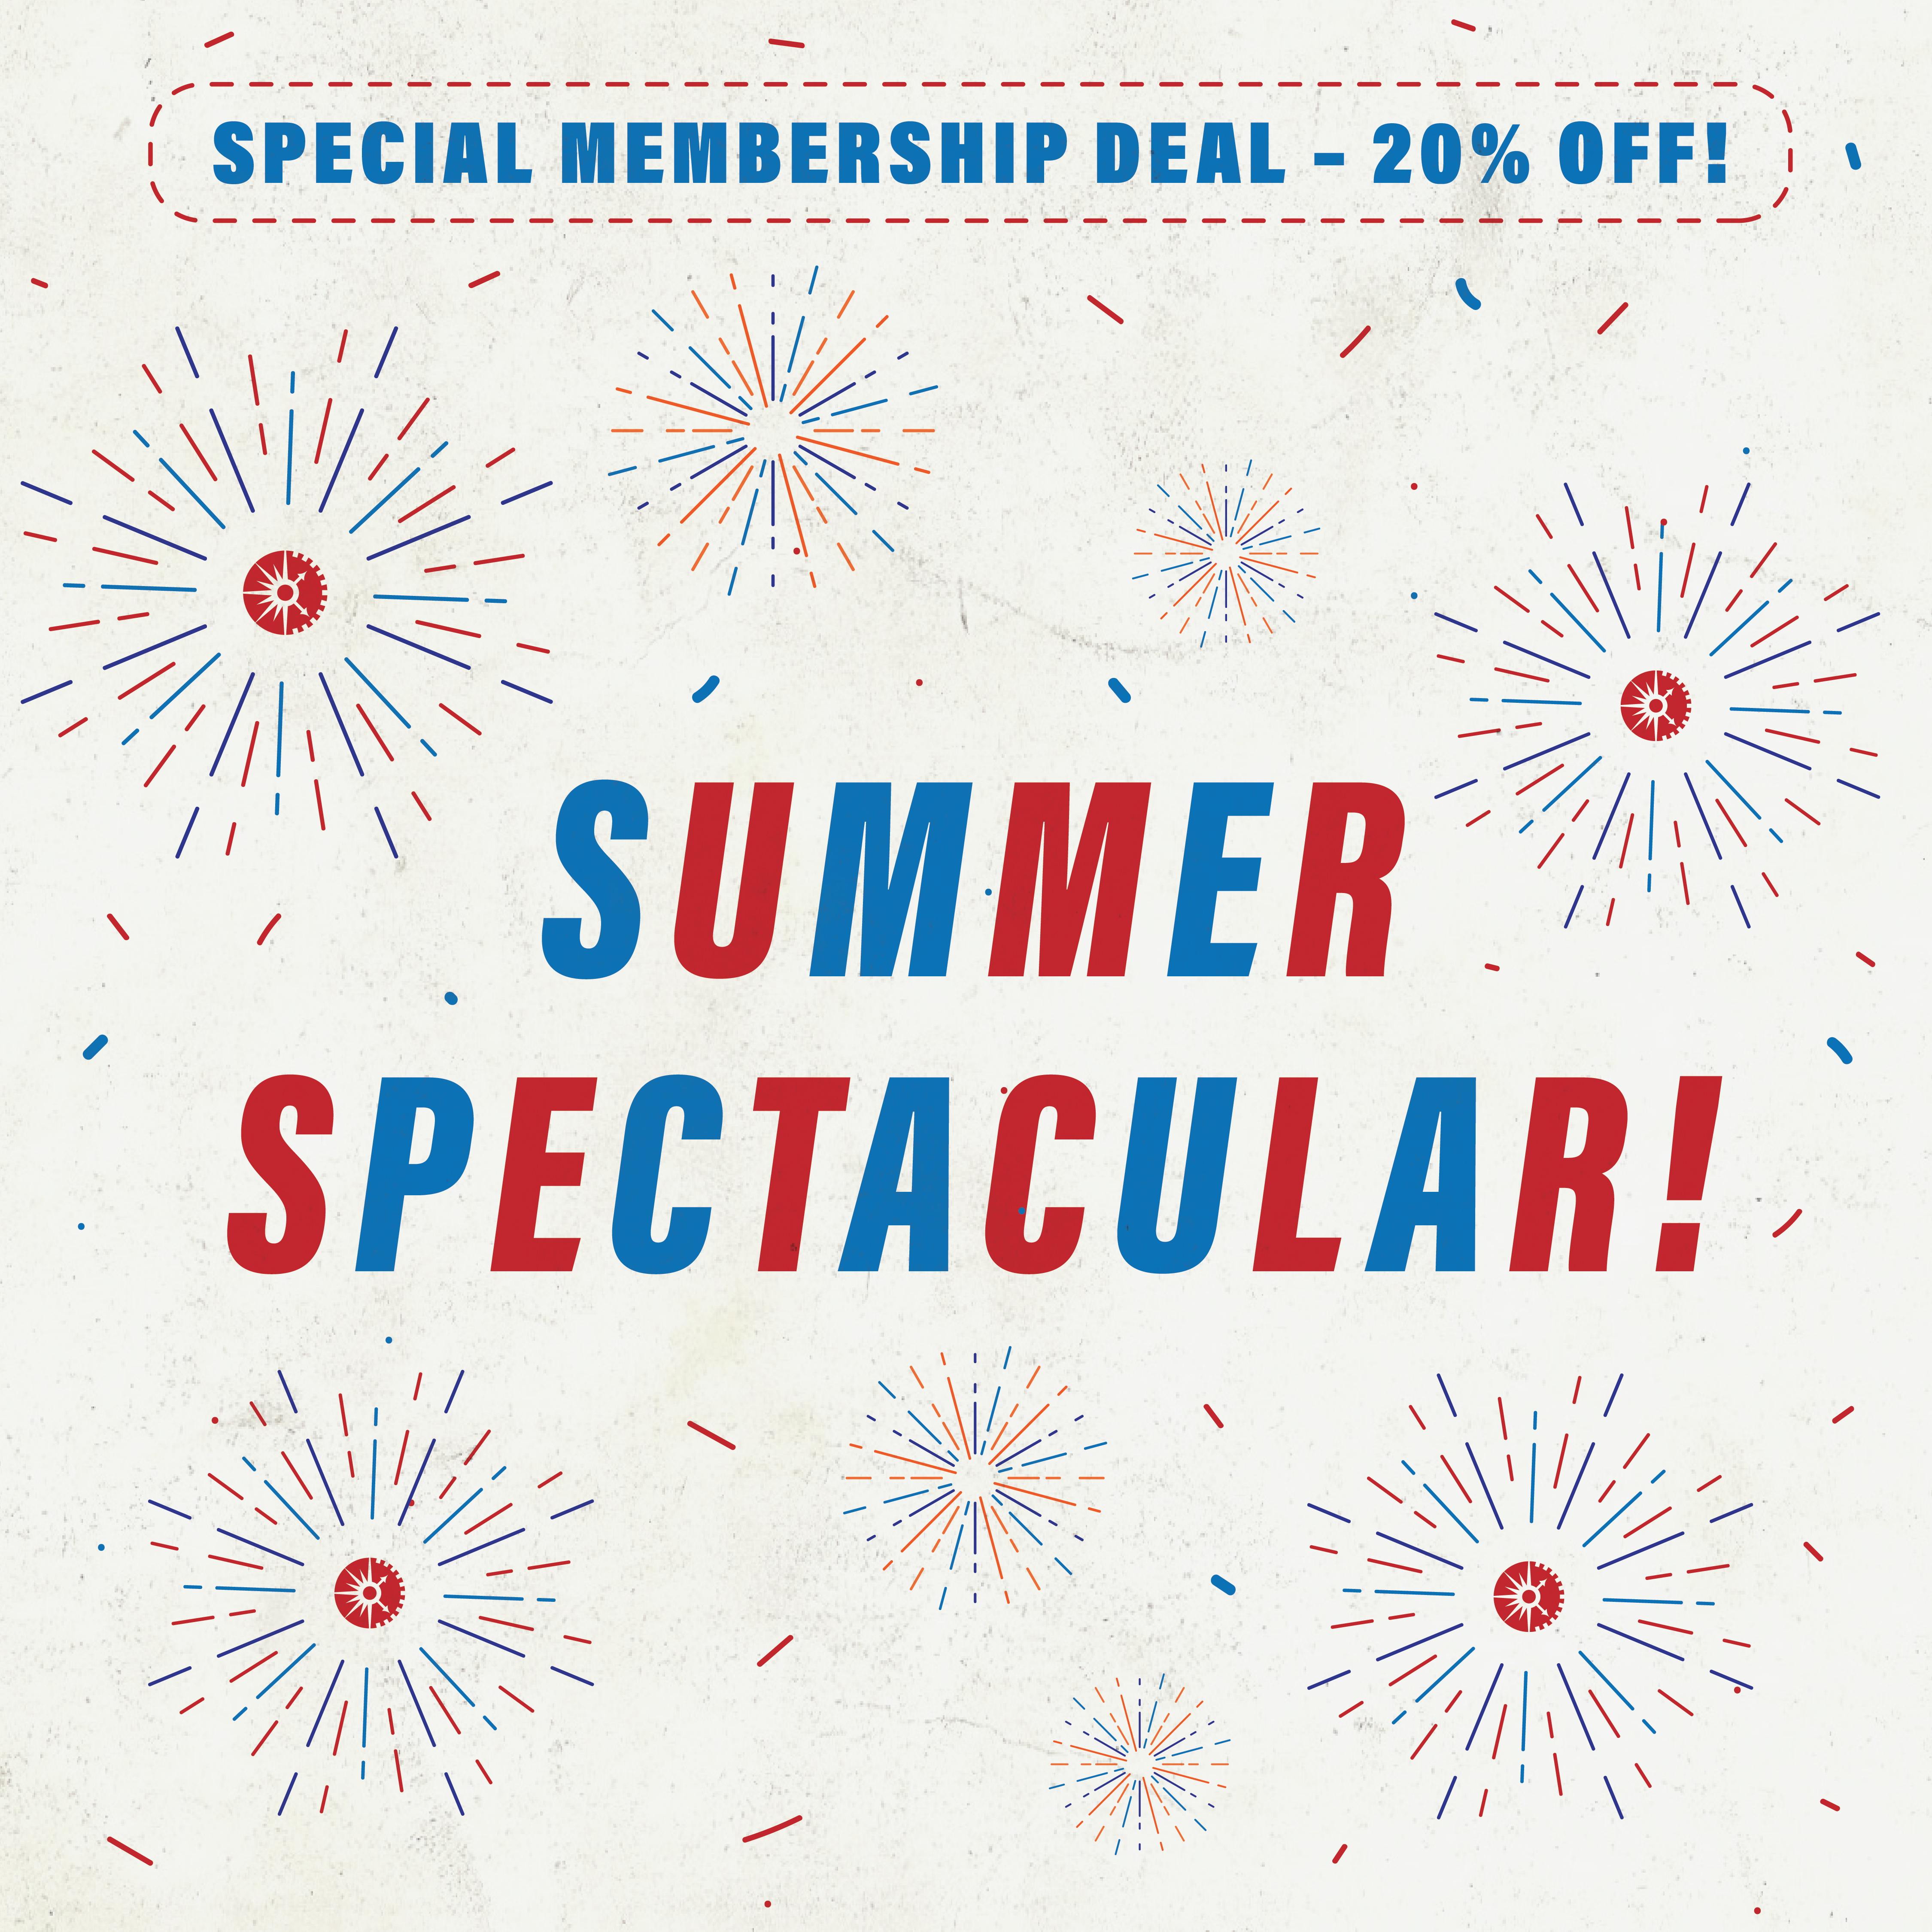 Summer Spectacular! Special Membership Deal - 20% Off!